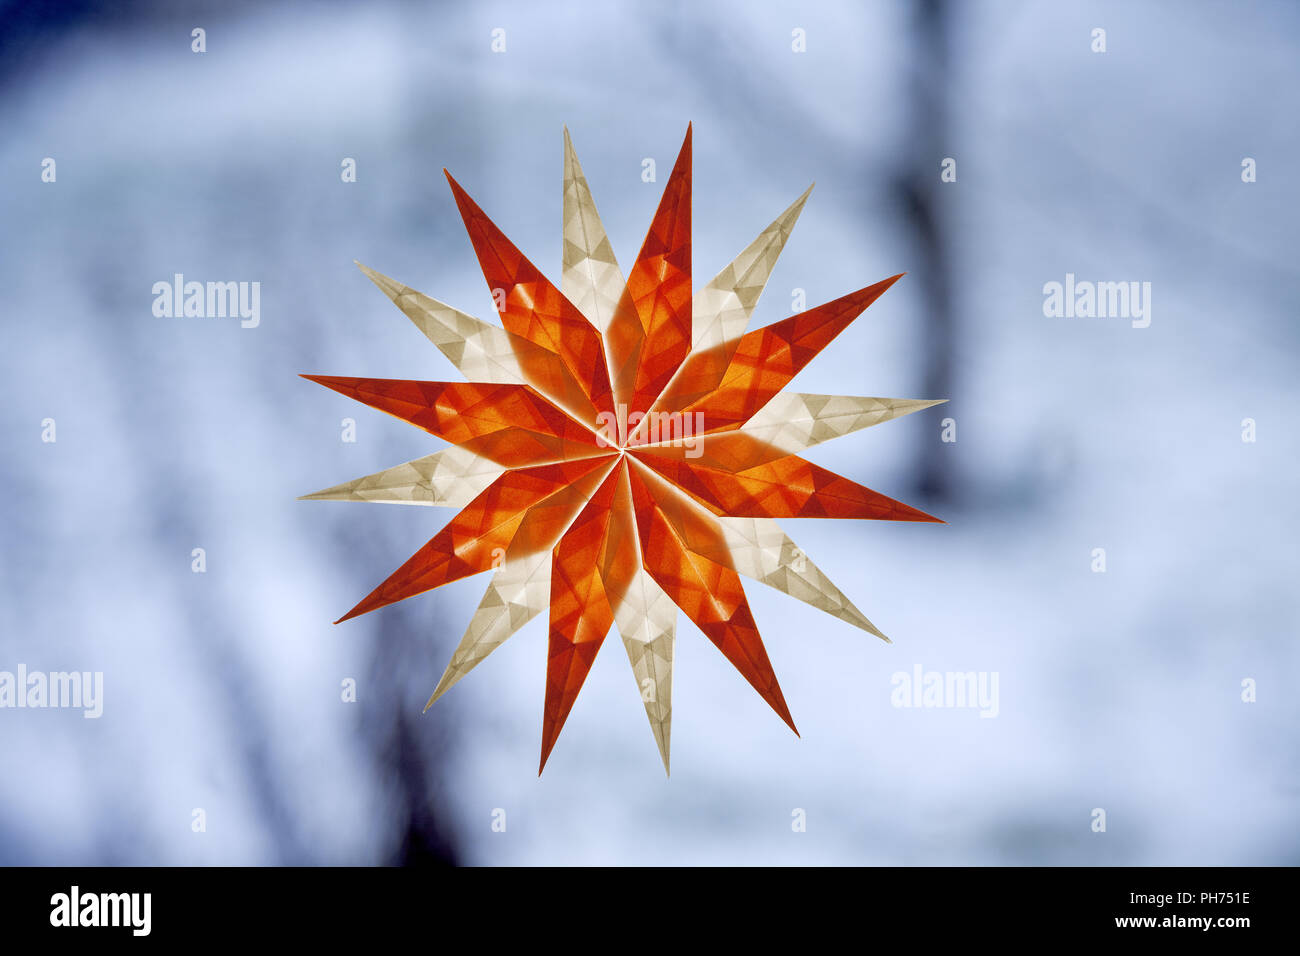 Transparent star, window decoration, wintertime - Stock Image